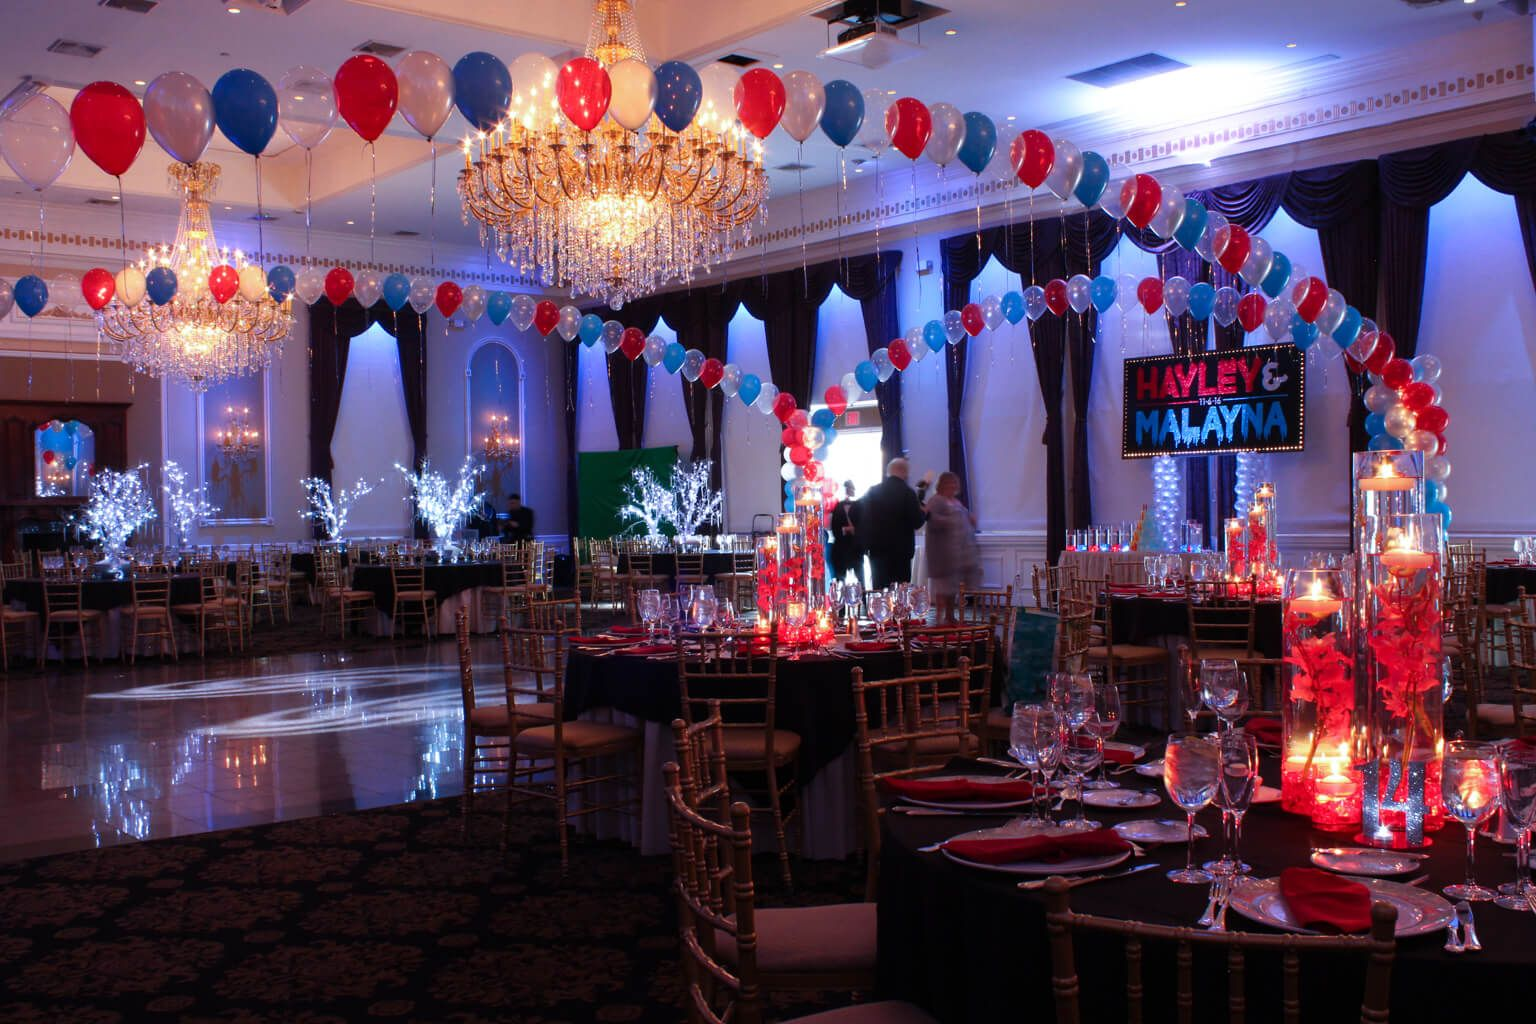 Wedding stage decoration with balloons  Red u Blue Balloon Gazebo with Lights for Fire u Ice Themed Bunai